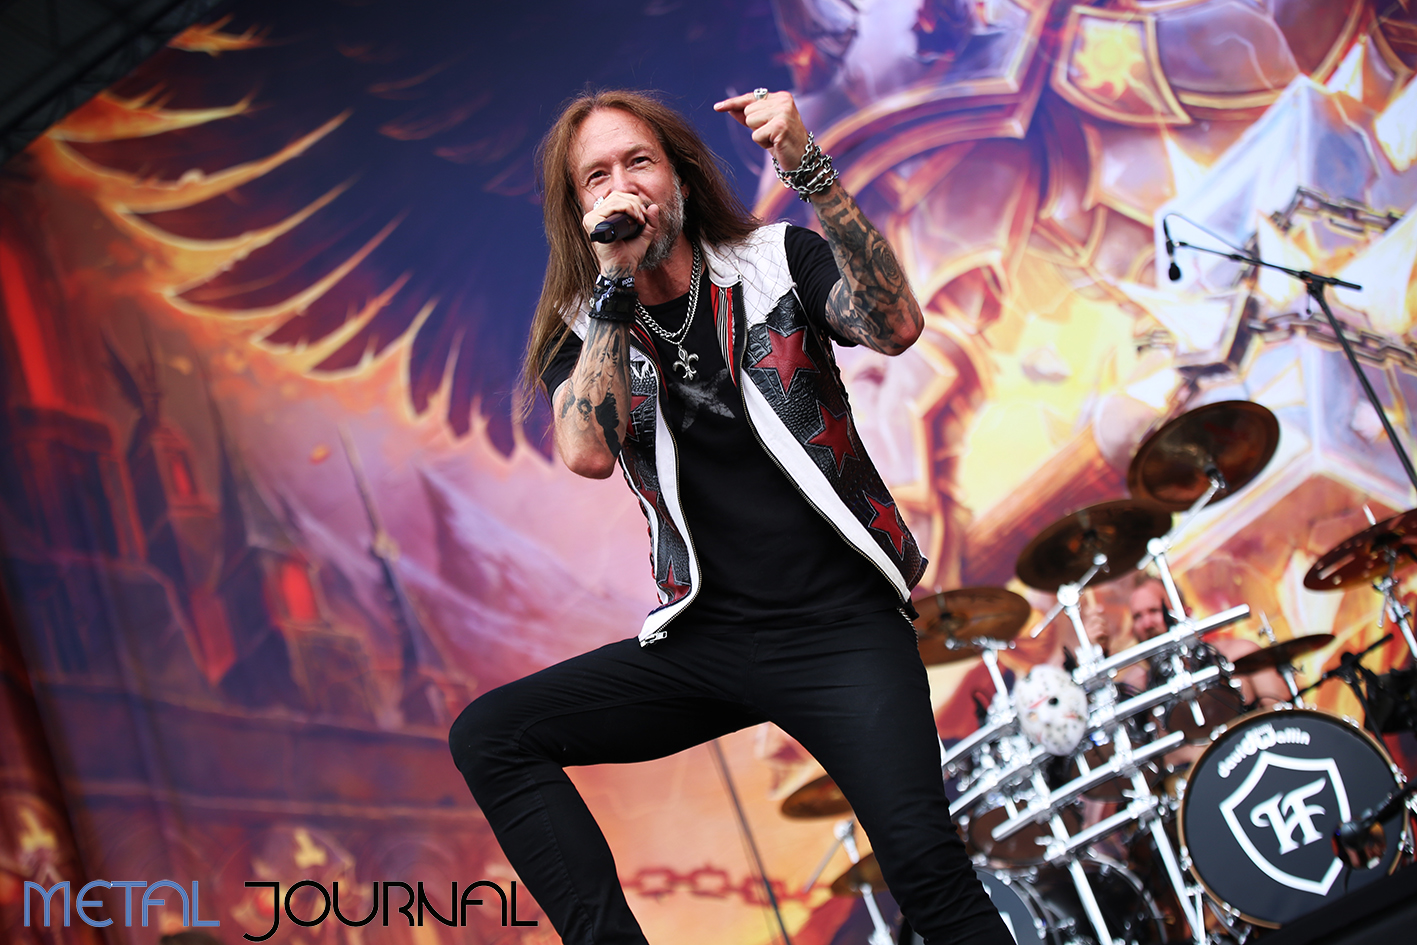 hammerfall - metal journal rock fest barcelona 2019 pic 3